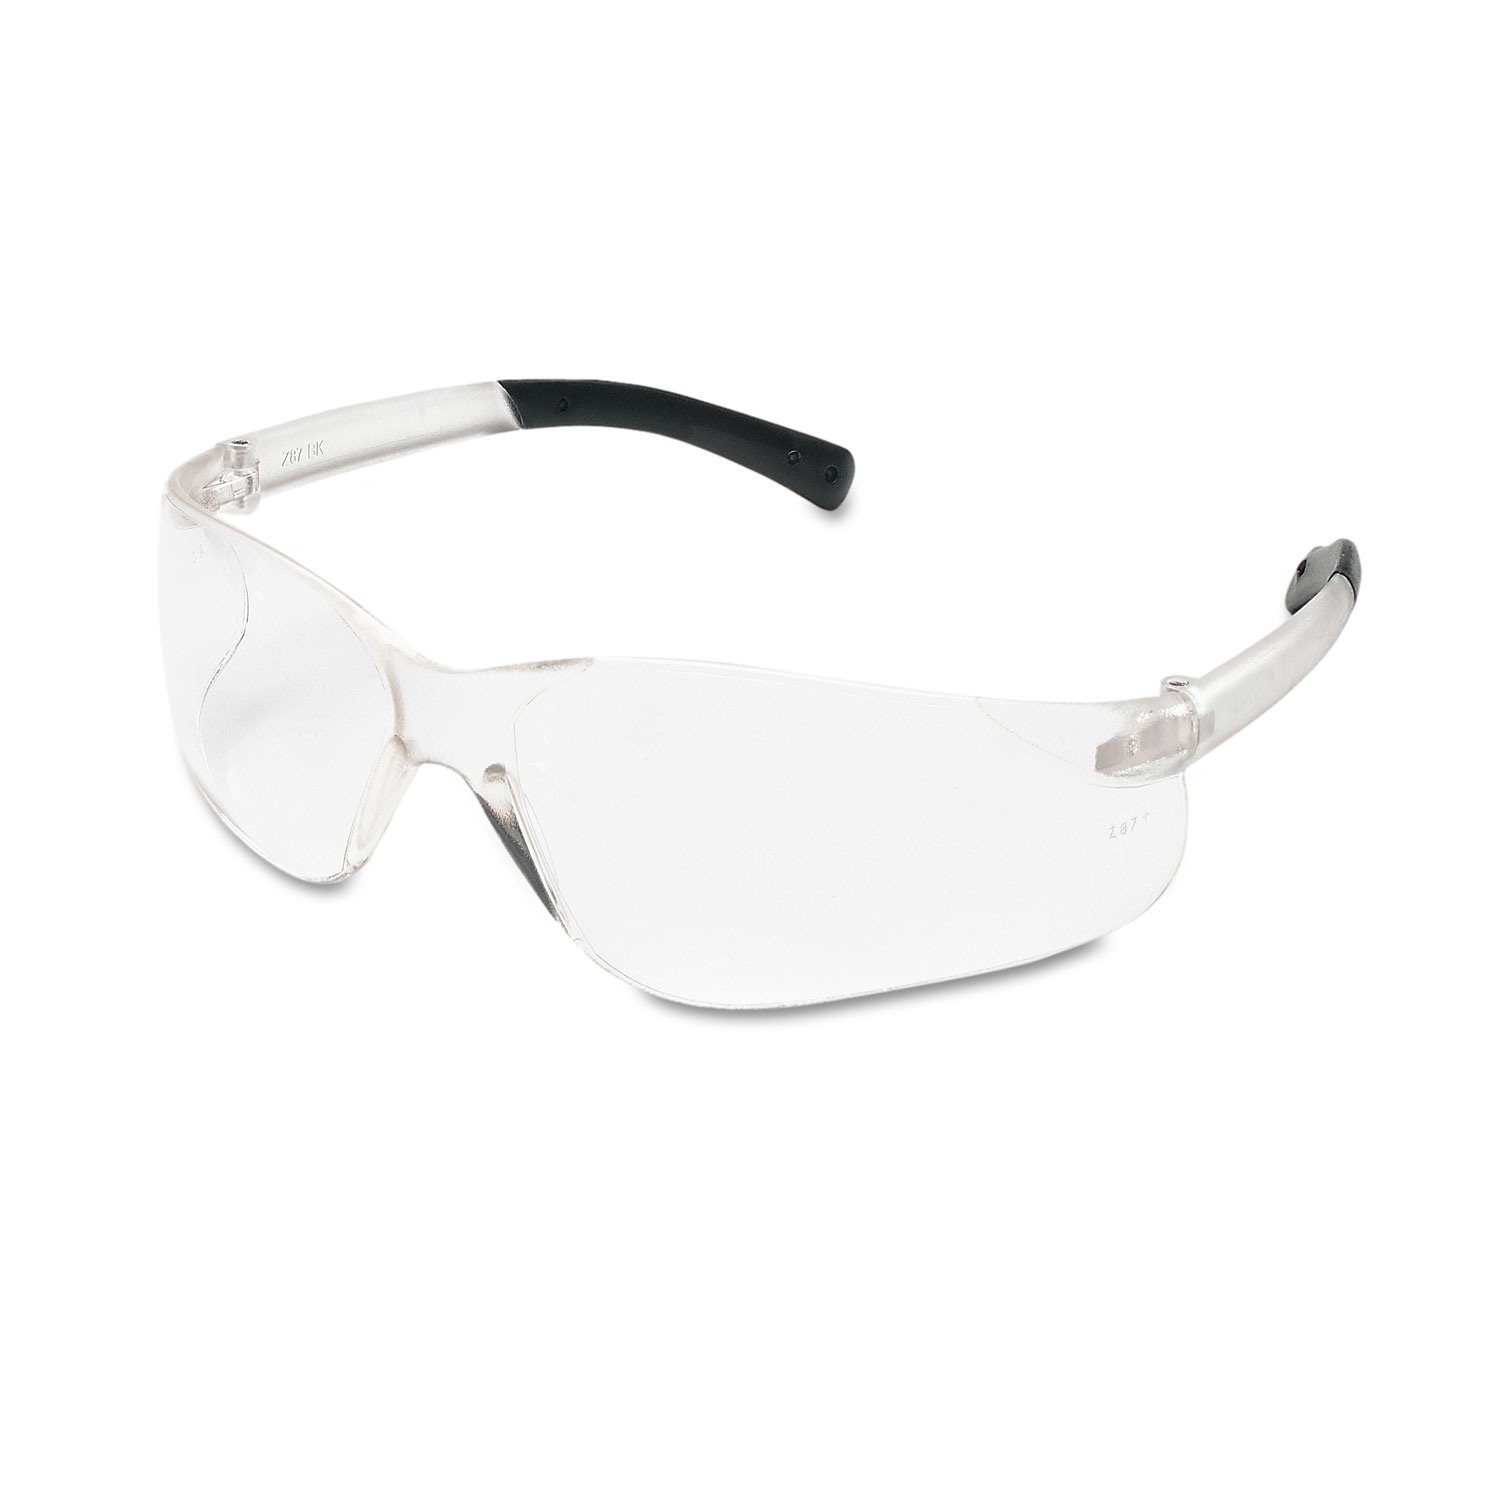 BearKat Safety Glasses, Wraparound, Black Frame/Clear Lens